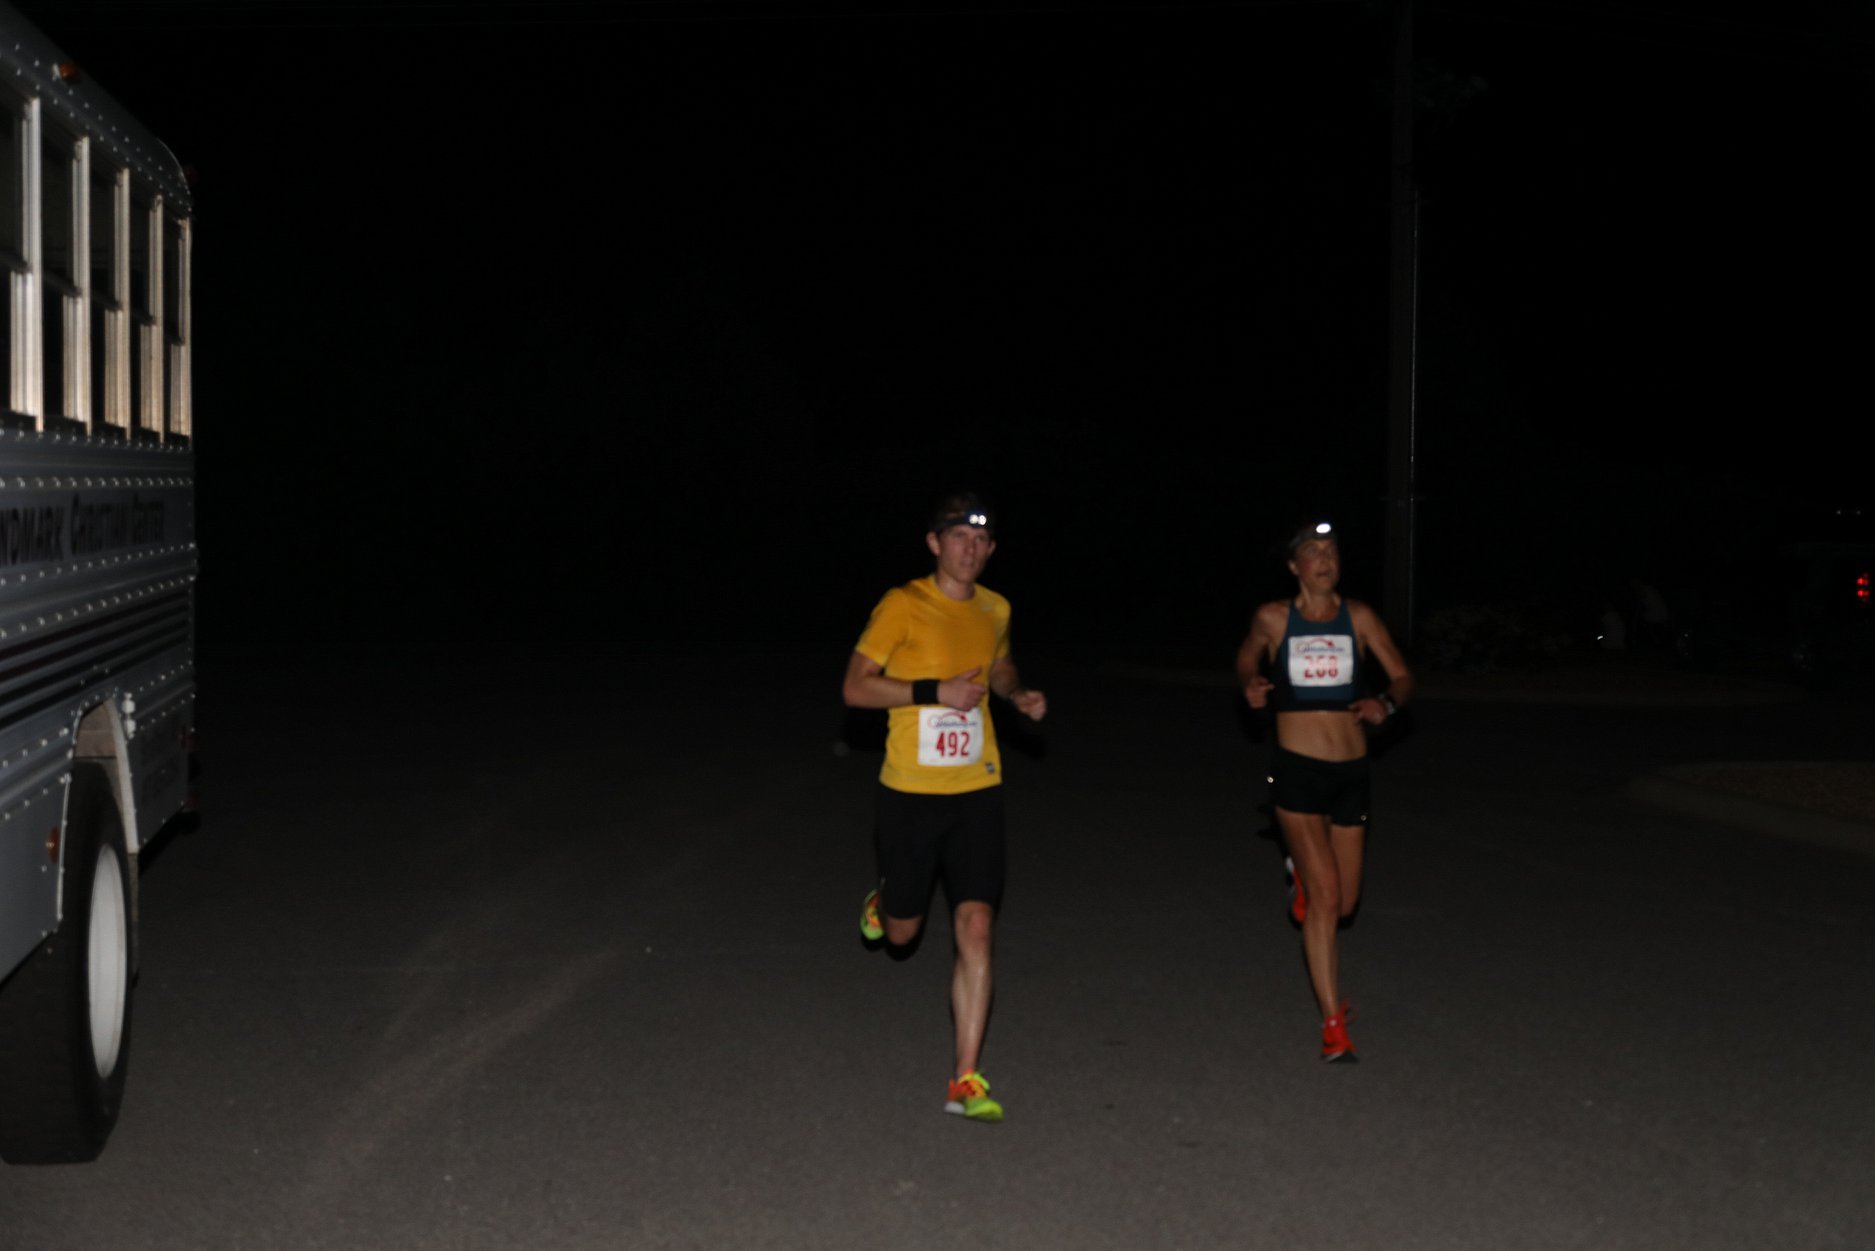 Sweatfest:  The race lived up to its name!